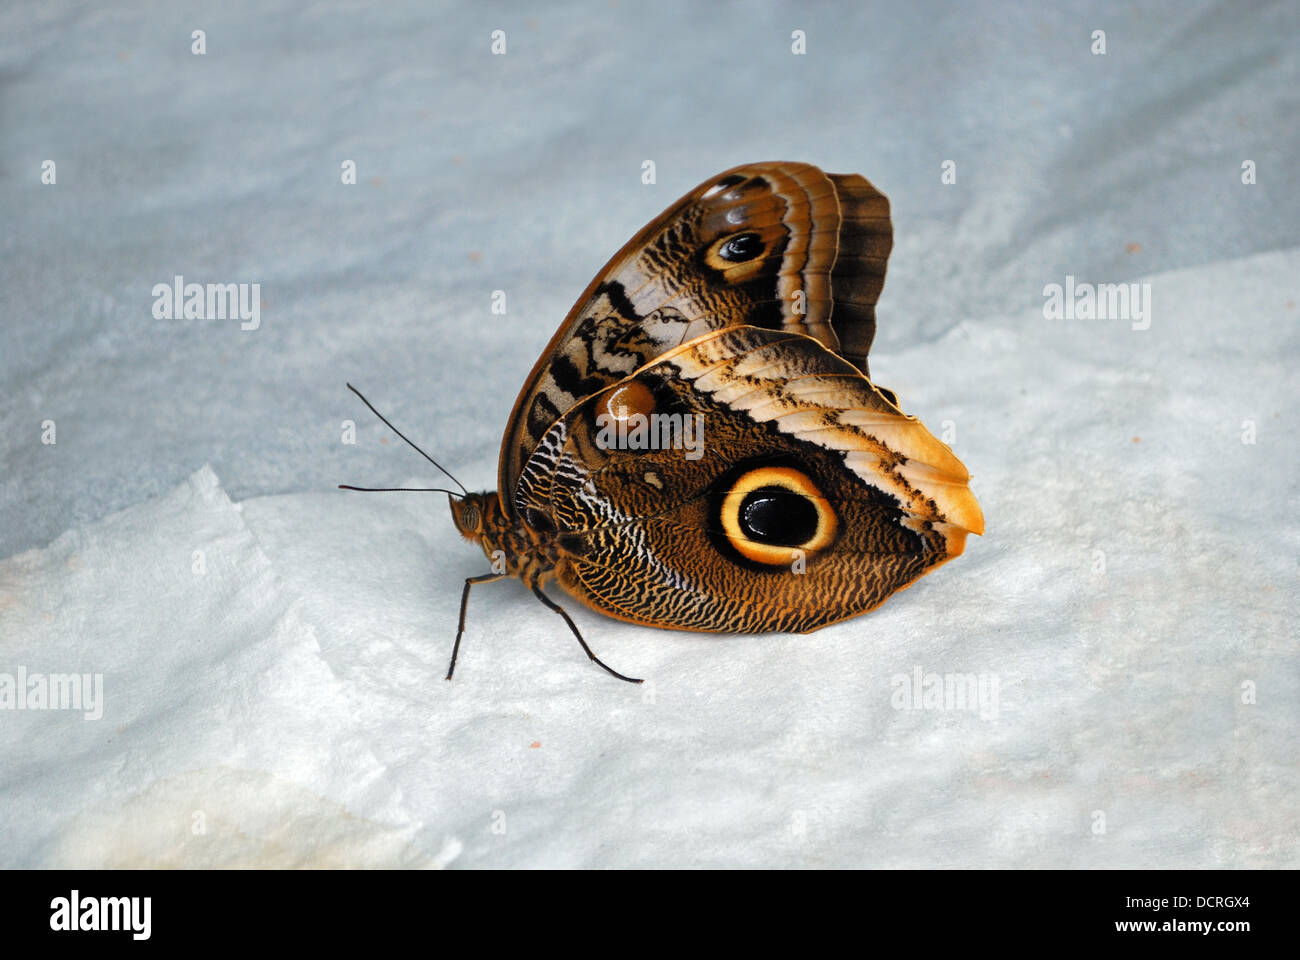 Owl butterfly (Caligo Memnon), Butterfly park (Mariposa de Benalmadena), Benalmadena, Spain, Western Europe. Stock Photo